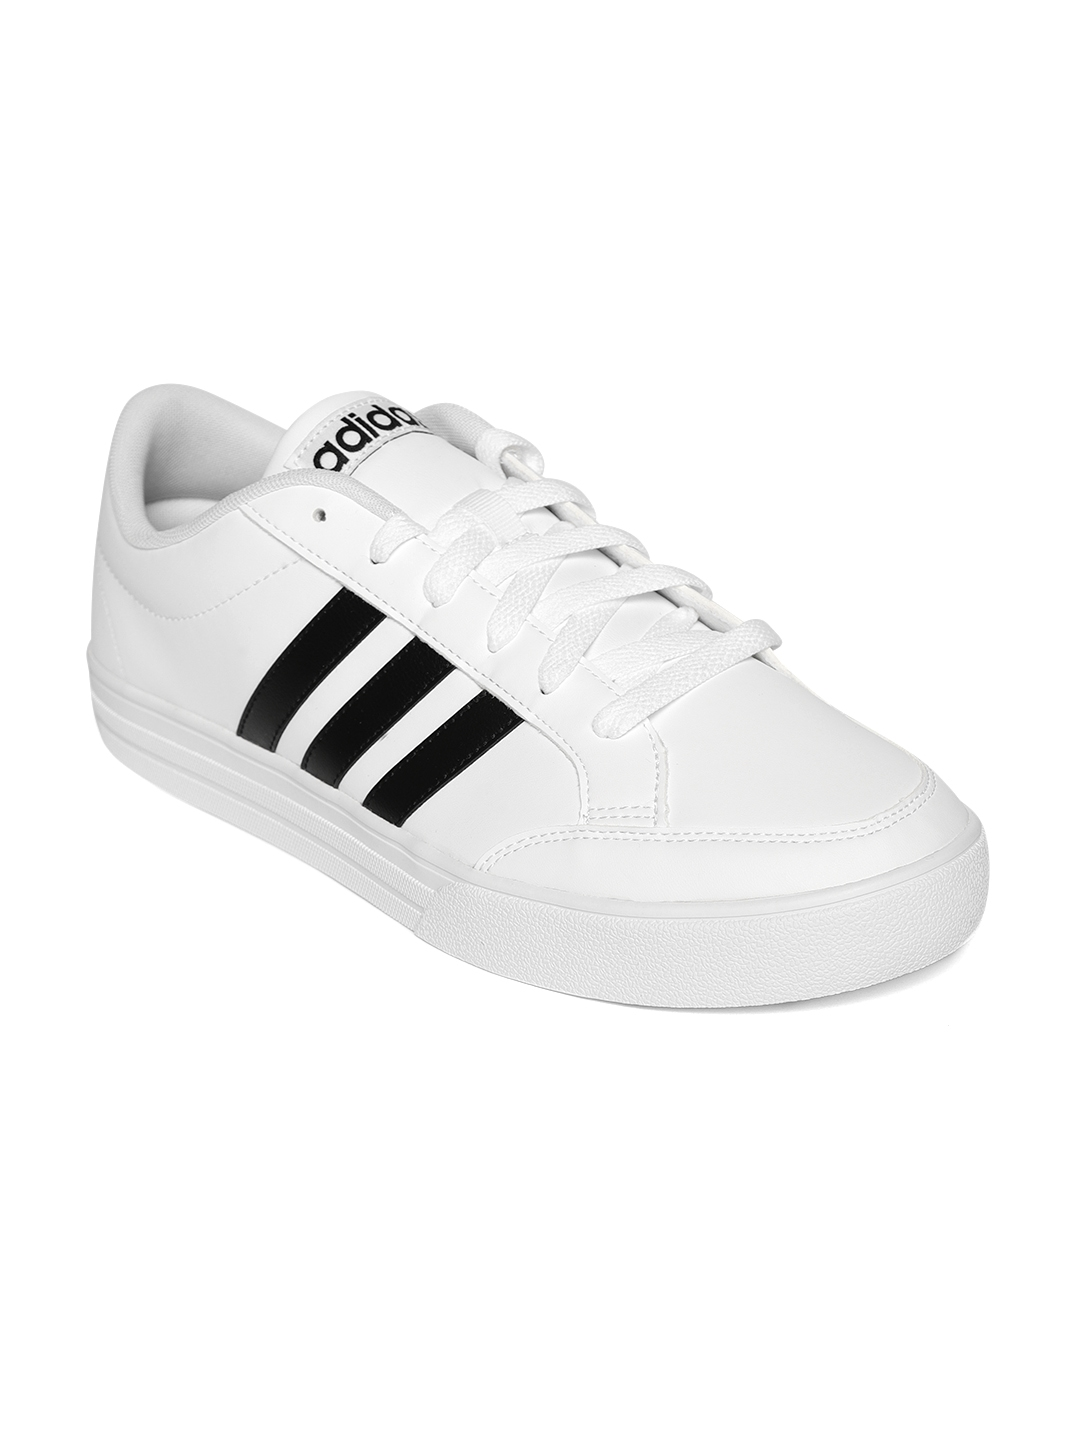 ADIDAS Men White VS Set Tennis Shoes